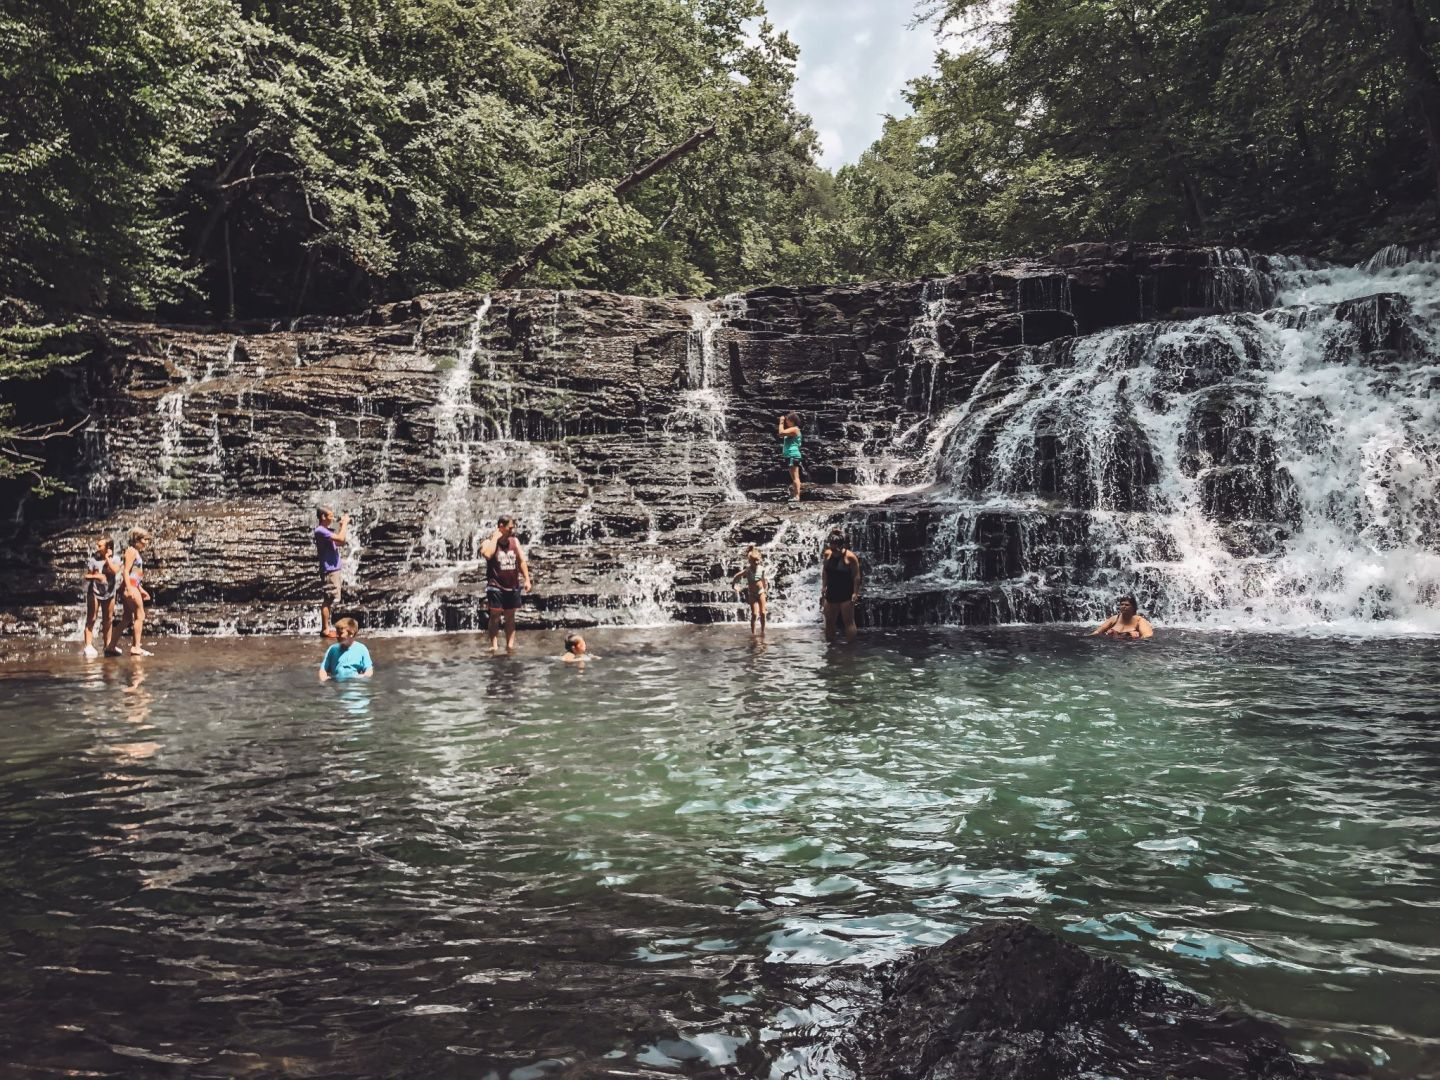 Family-Friendly Waterfall Hiking Trails in Nashville, TN by popular Nashville blog, Modern Day Moguls: image of a group of people swimming at Rutledge Falls in Tullahoma, TN.